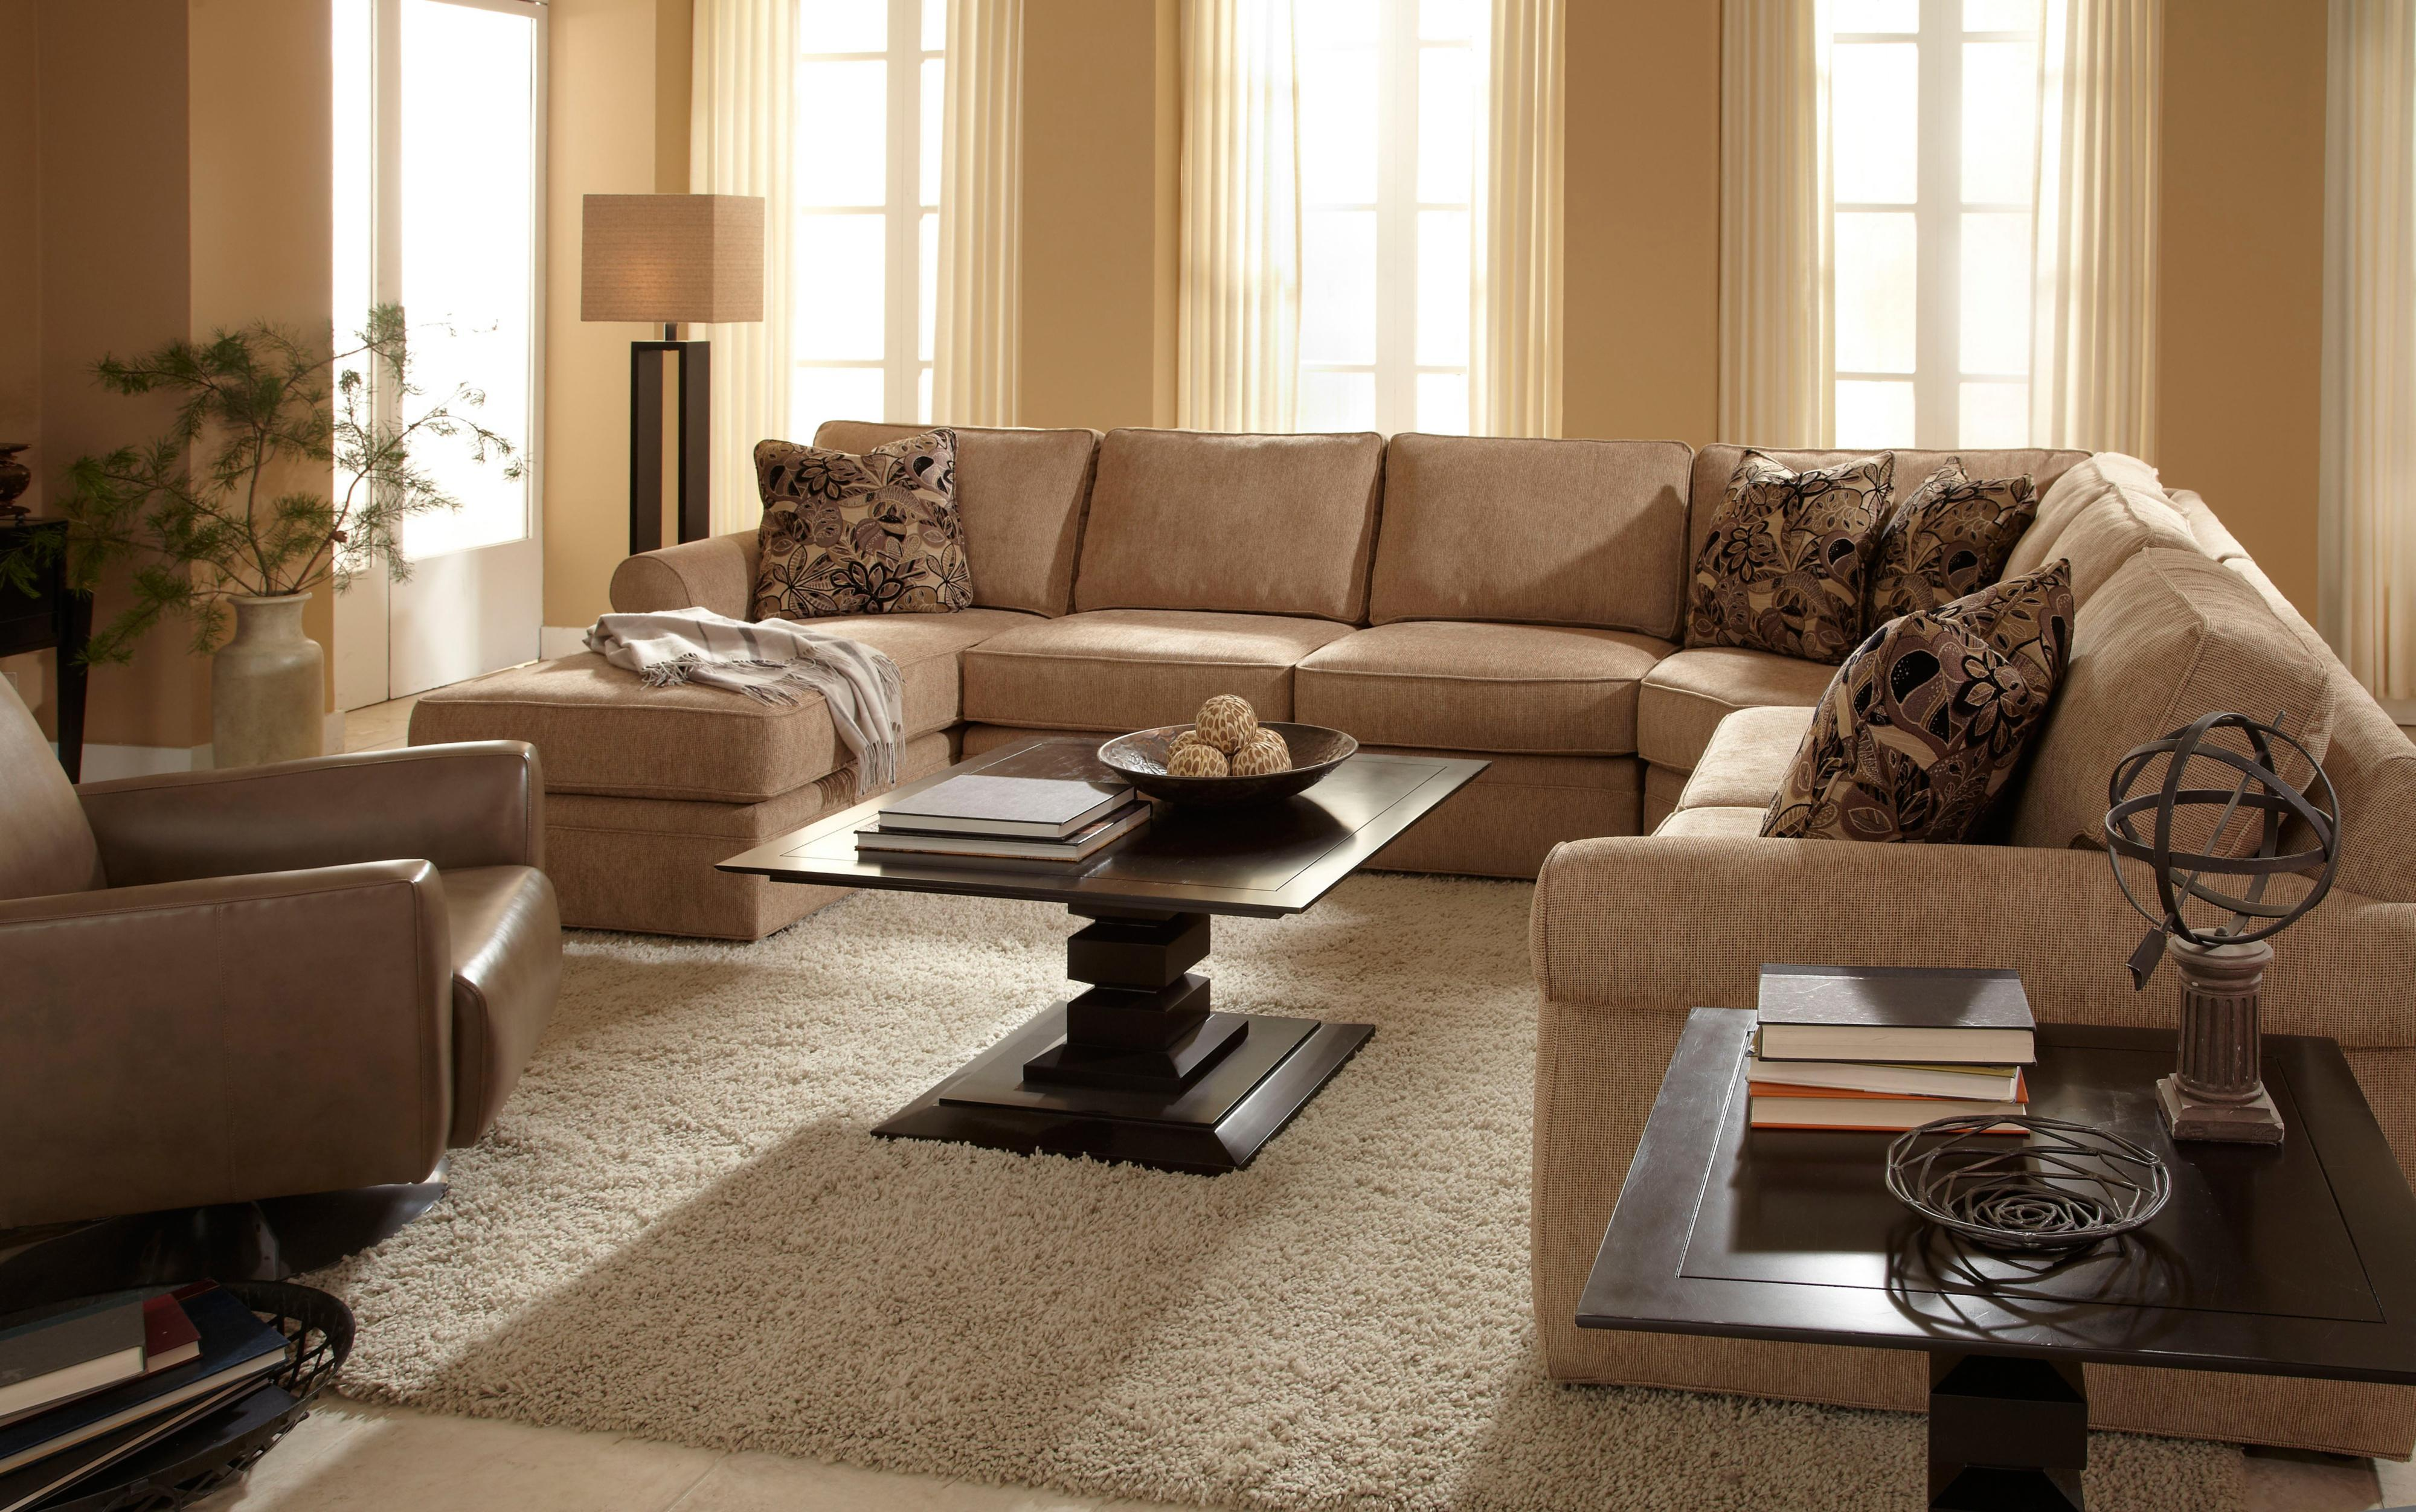 Veronica sof by broyhill furniture baer 39 s furniture for Broyhill furniture